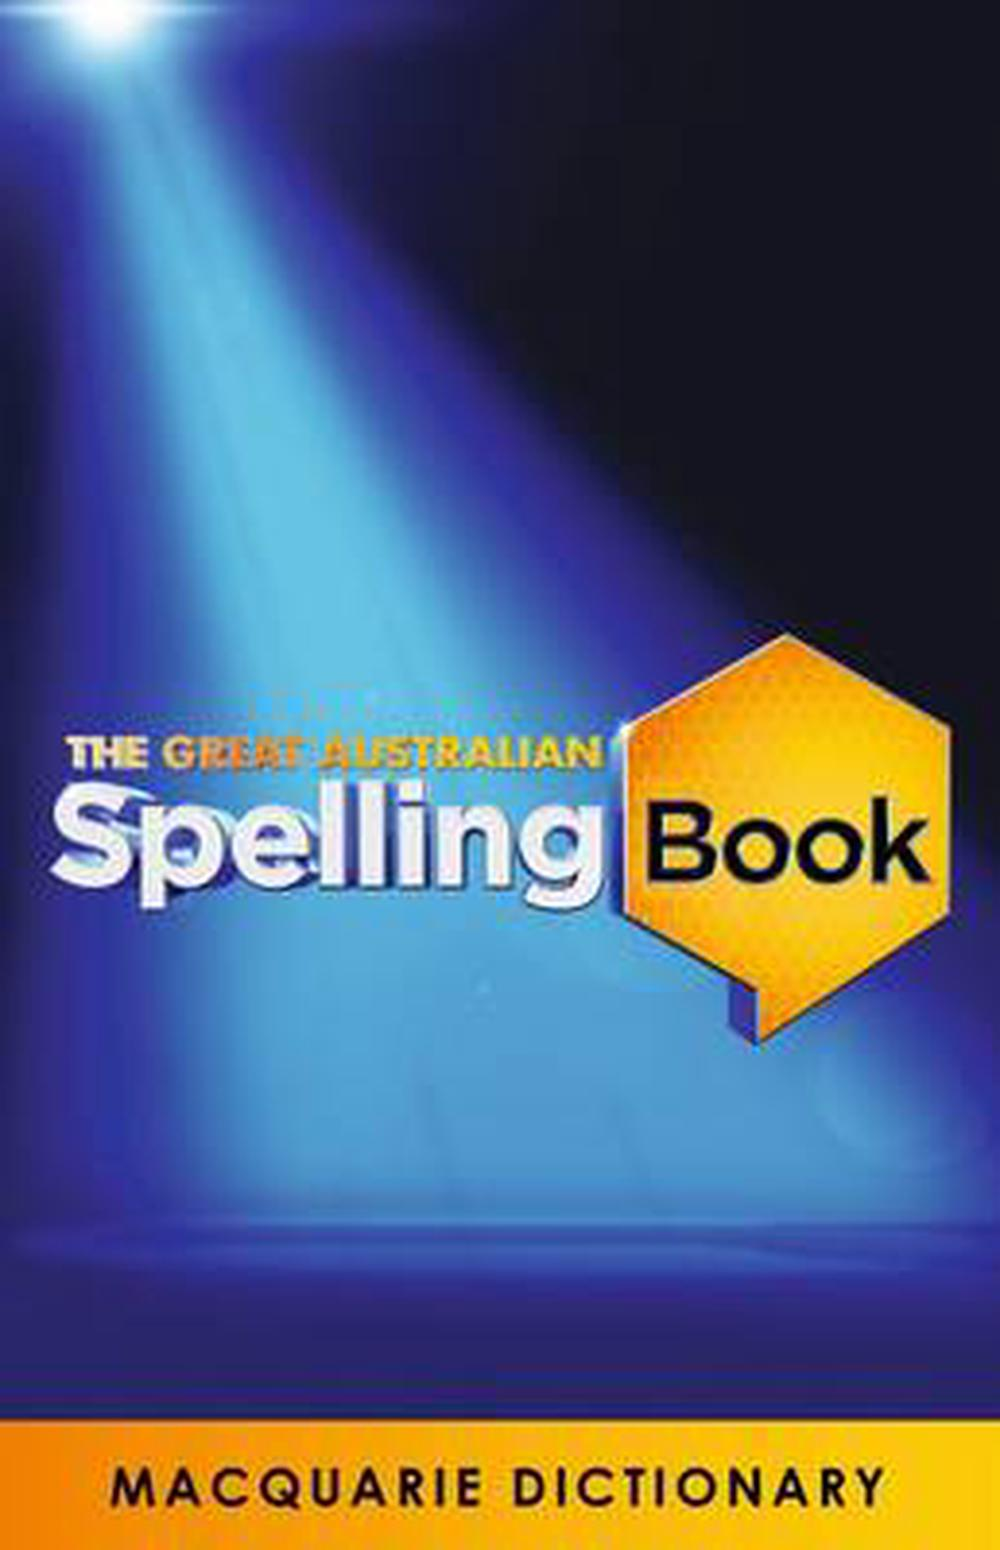 The Great Australian Spelling Book